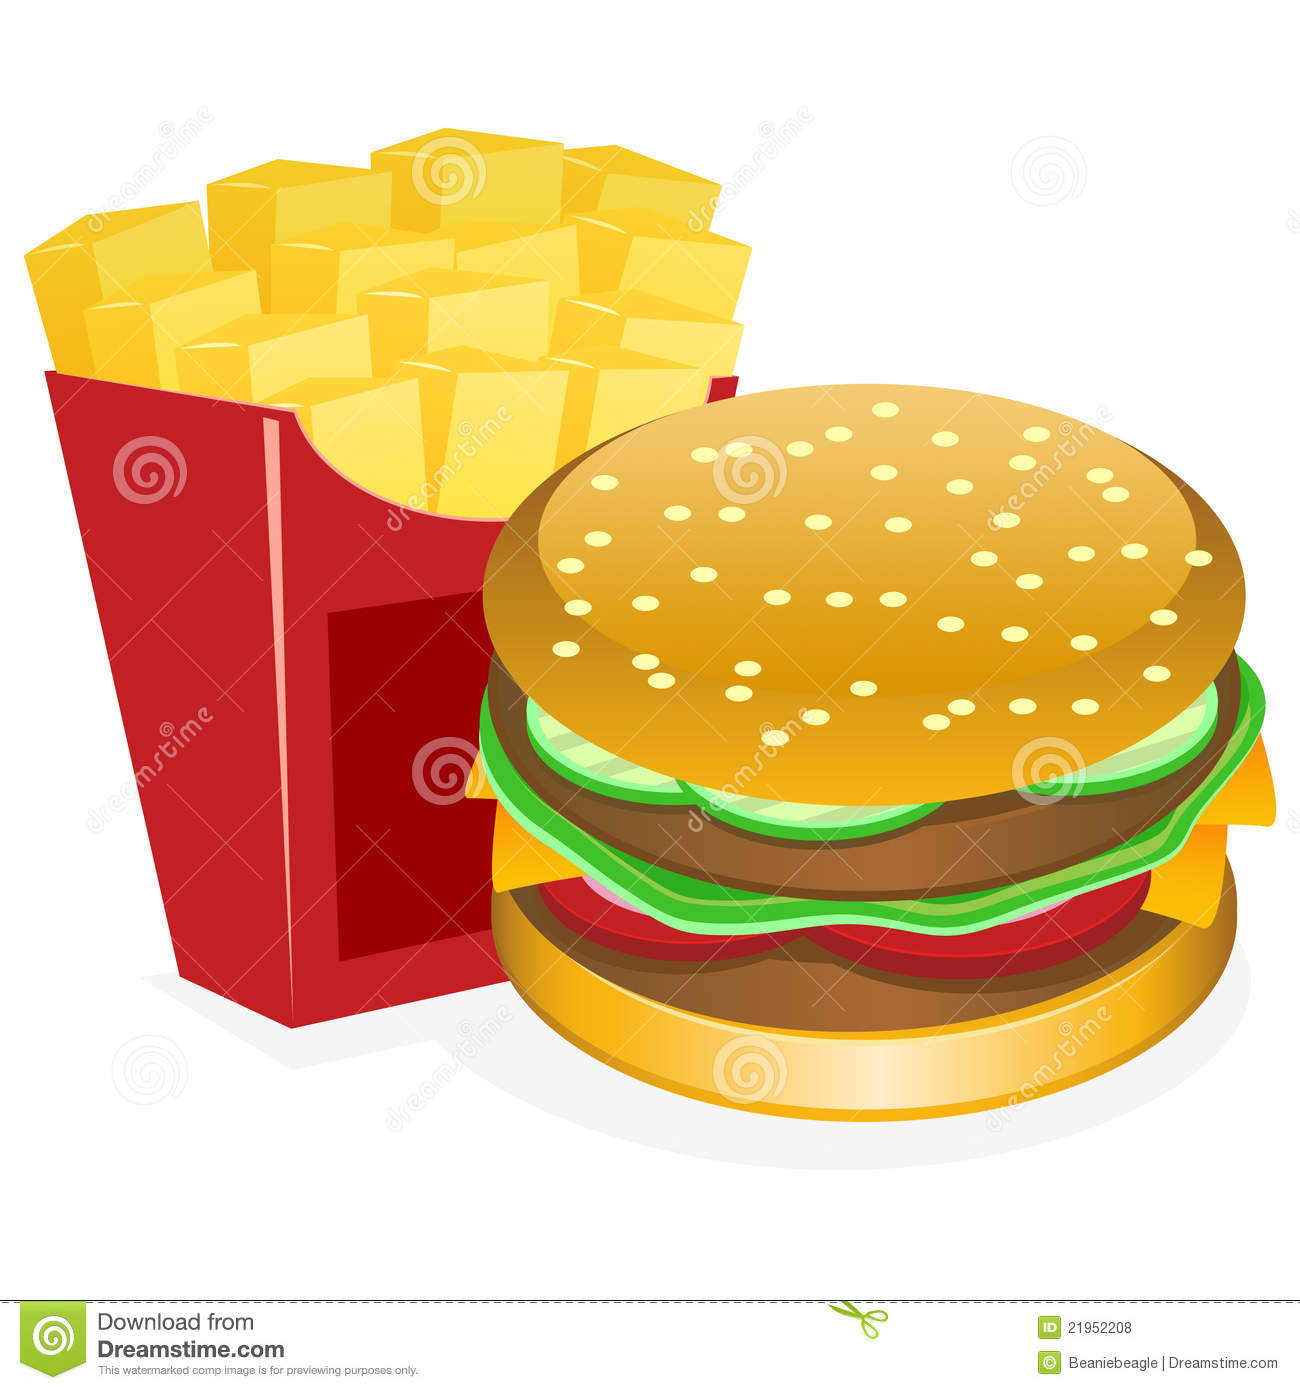 Clipart burger and fries banner download Burger and fries clipart 6 » Clipart Station banner download